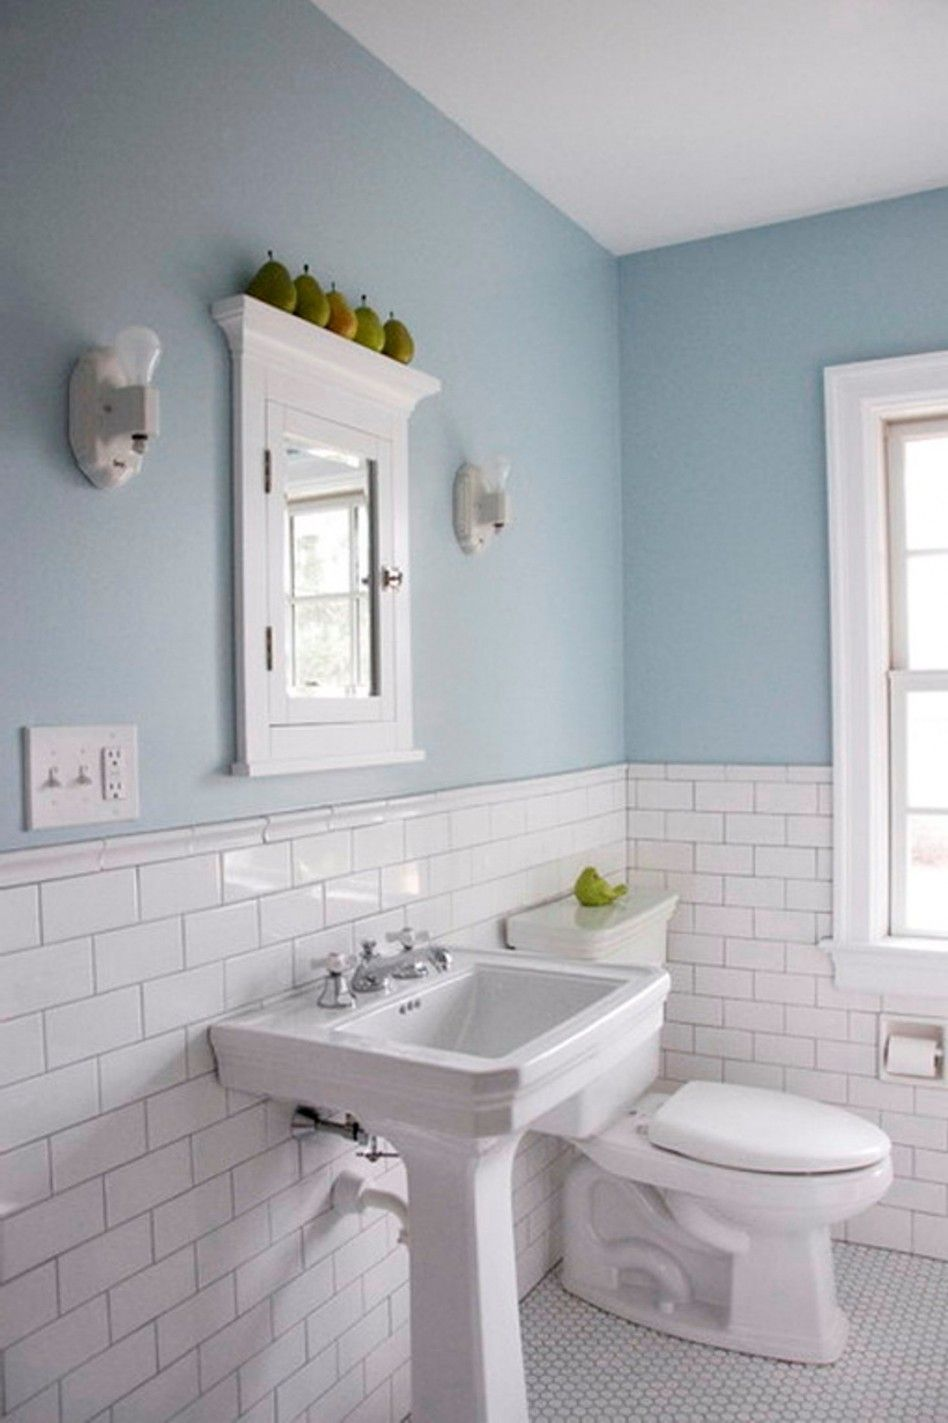 White subyway color combination traditional bathroom floor tile also wahbasin water closet and - Small half bathroom tile ideas ...